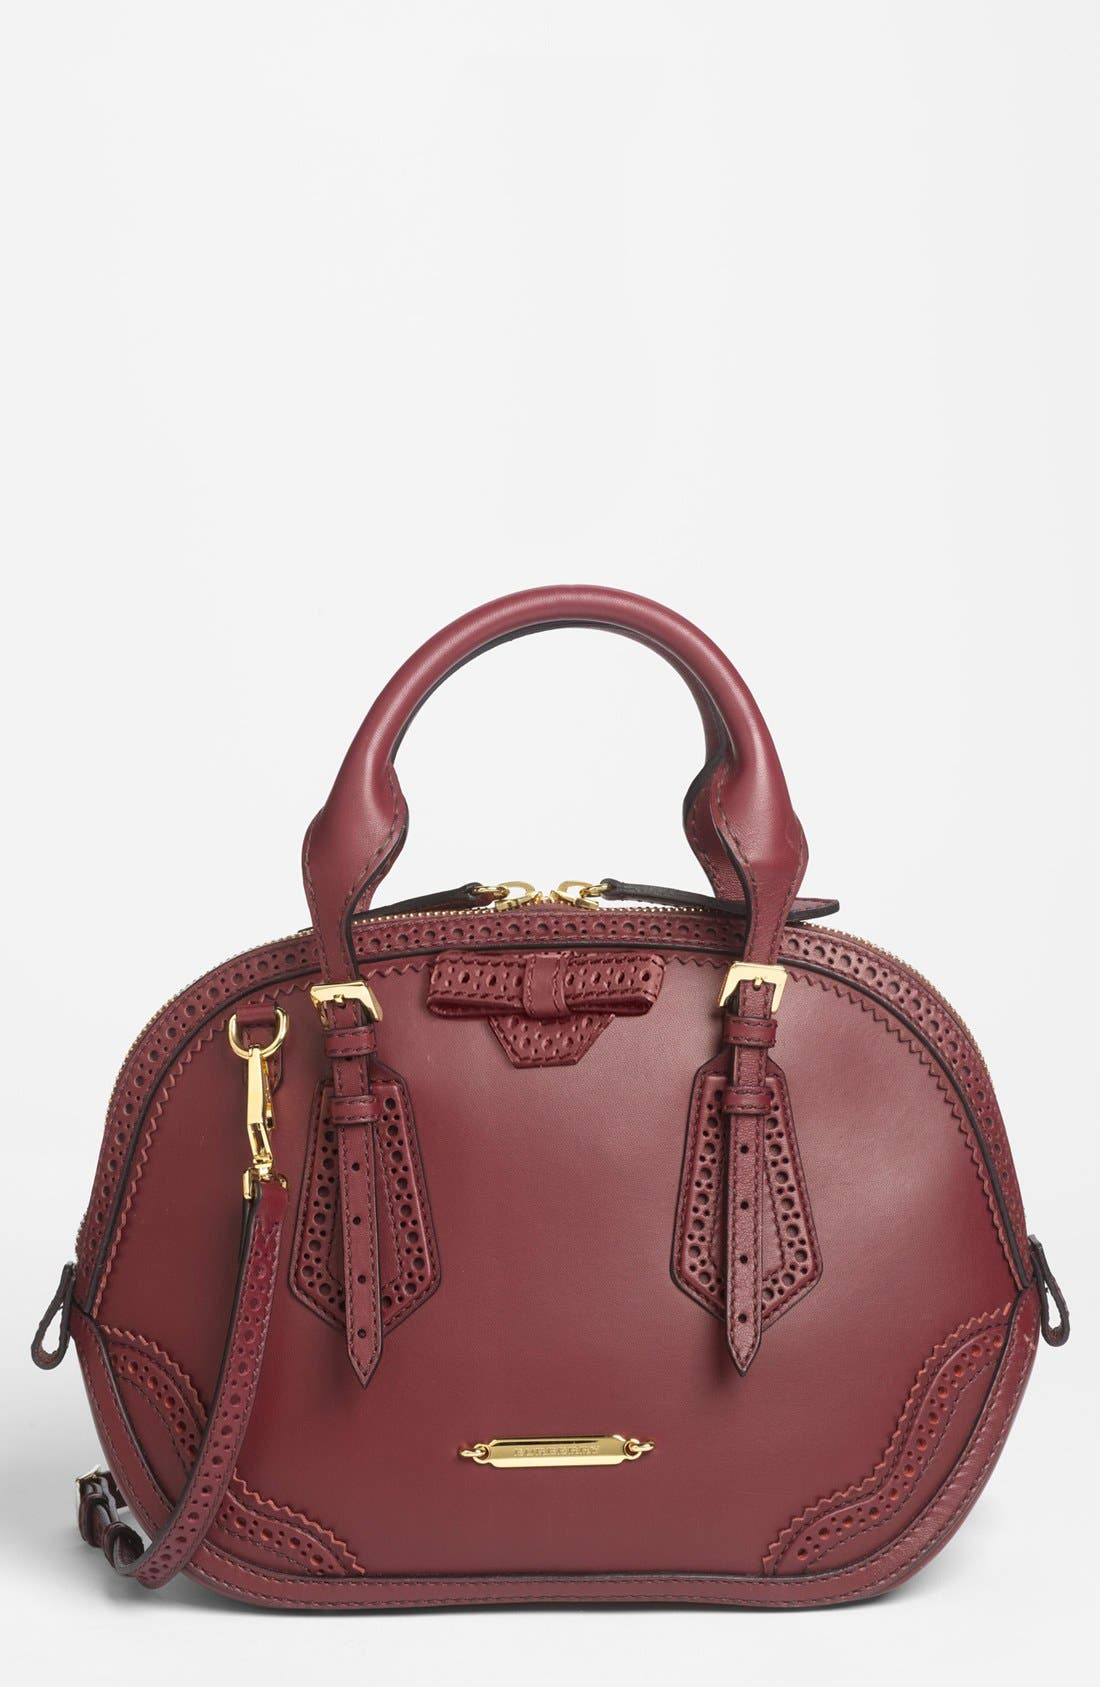 Main Image - Burberry 'Orchard - Small' Brogued Leather Satchel